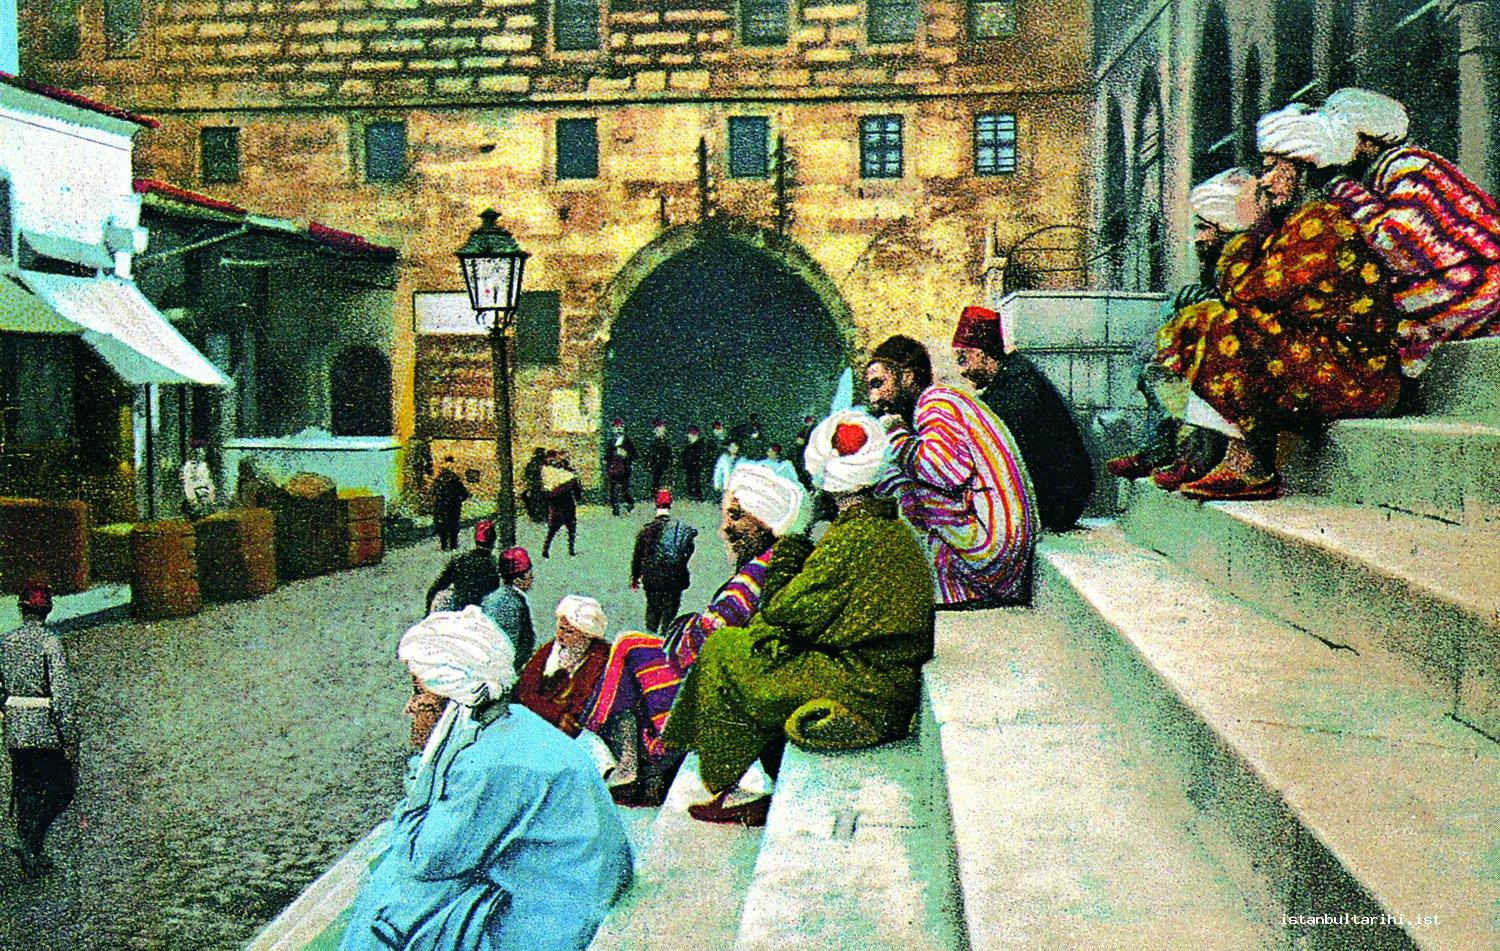 10- The Afghan, Turkmen, and Indian pilgrims resting on the steps of New Mosque (1908). During the period of Sultan Abdulhamid II, the pilgrims were encouraged to go to